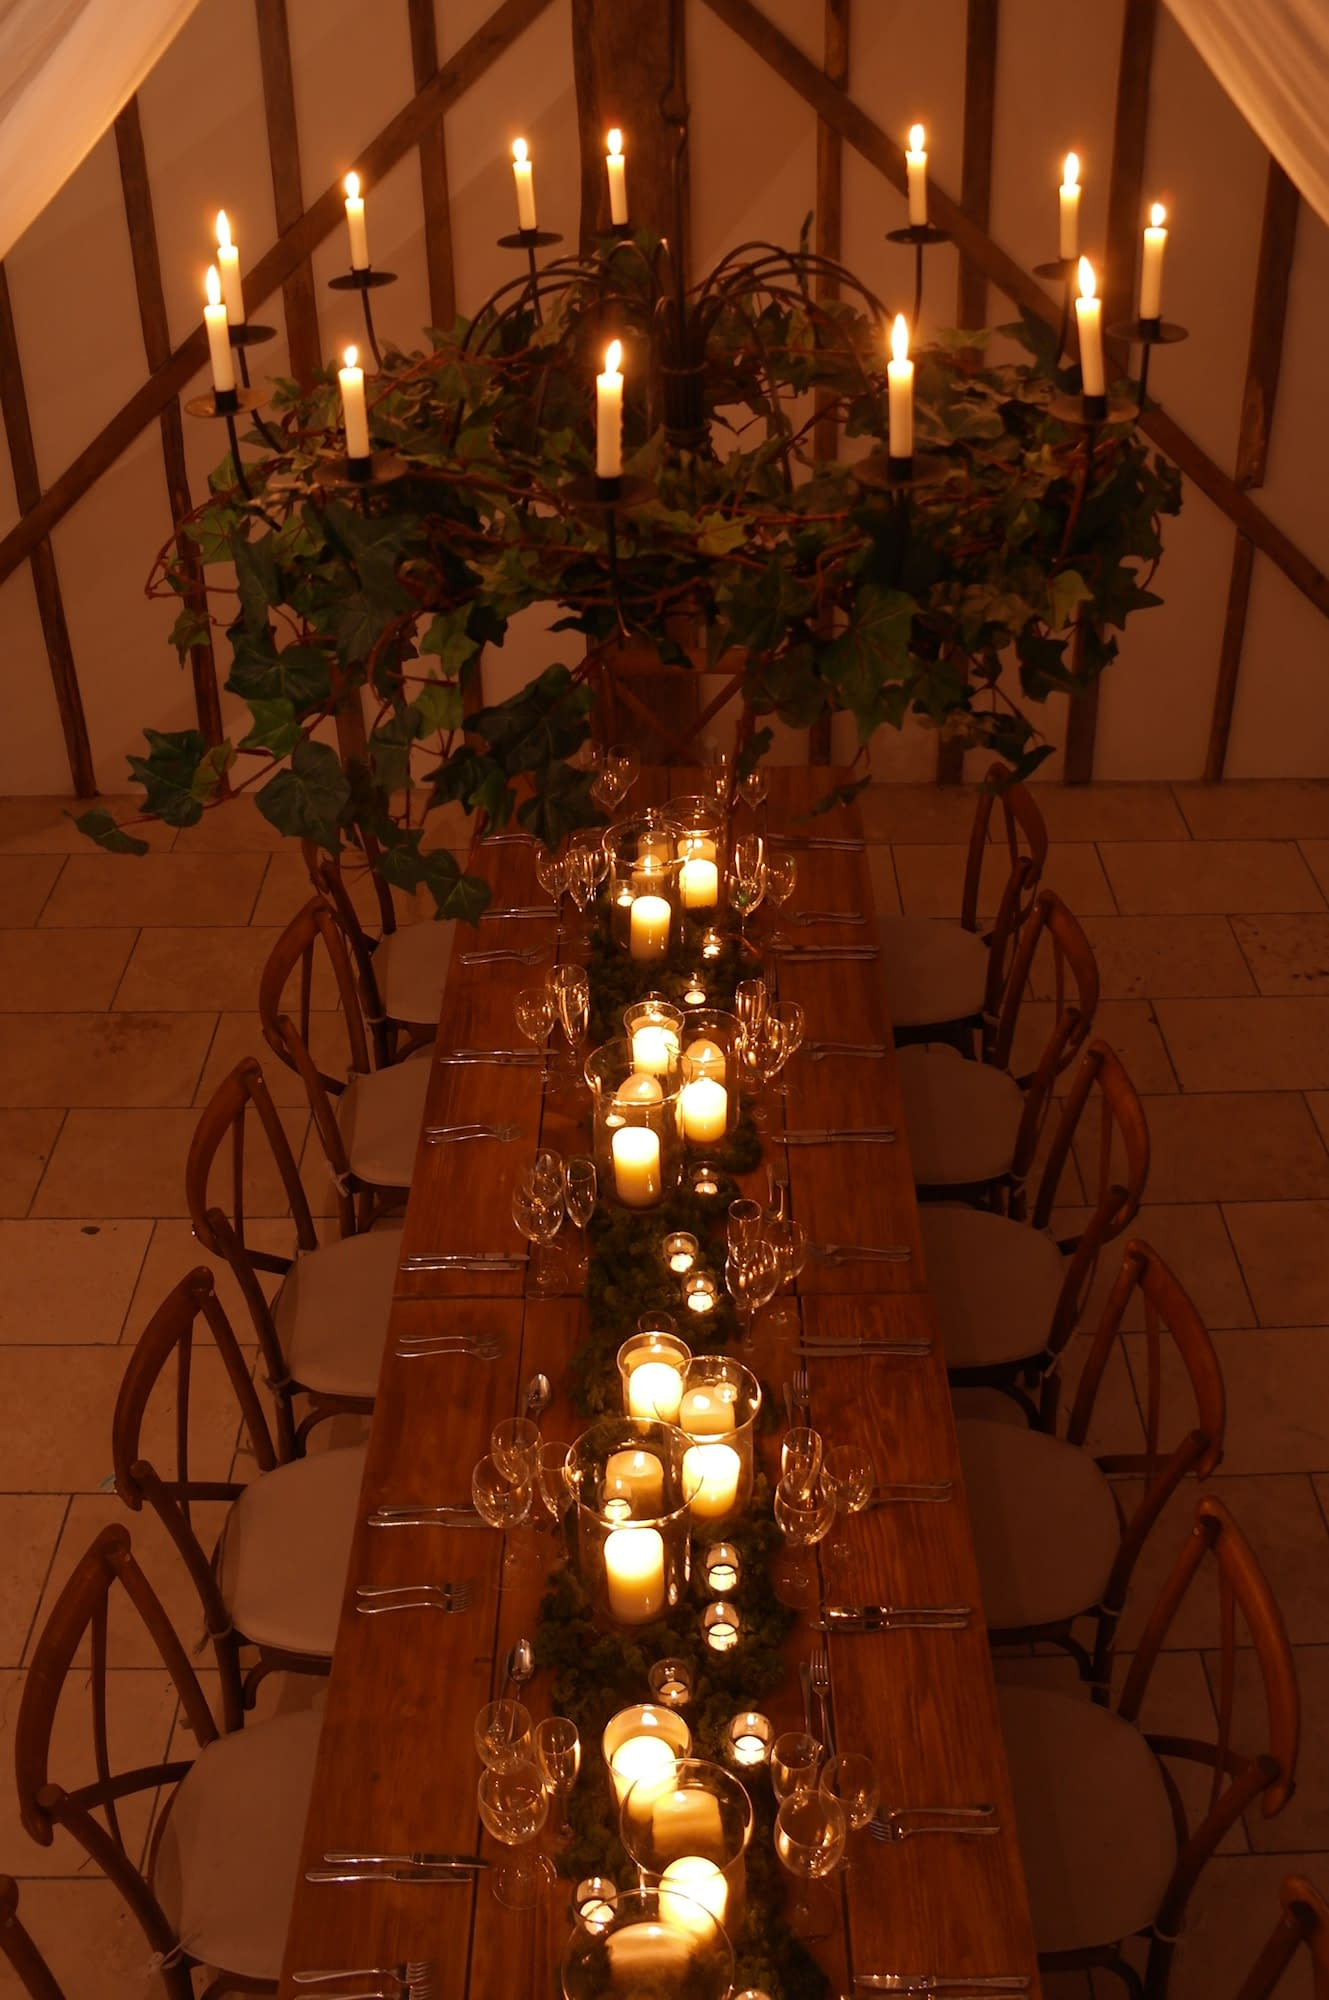 Rustic candlelit tablescape for a Sussex barn wedding with long table storm lanterns moss and overhead foliage chandelier